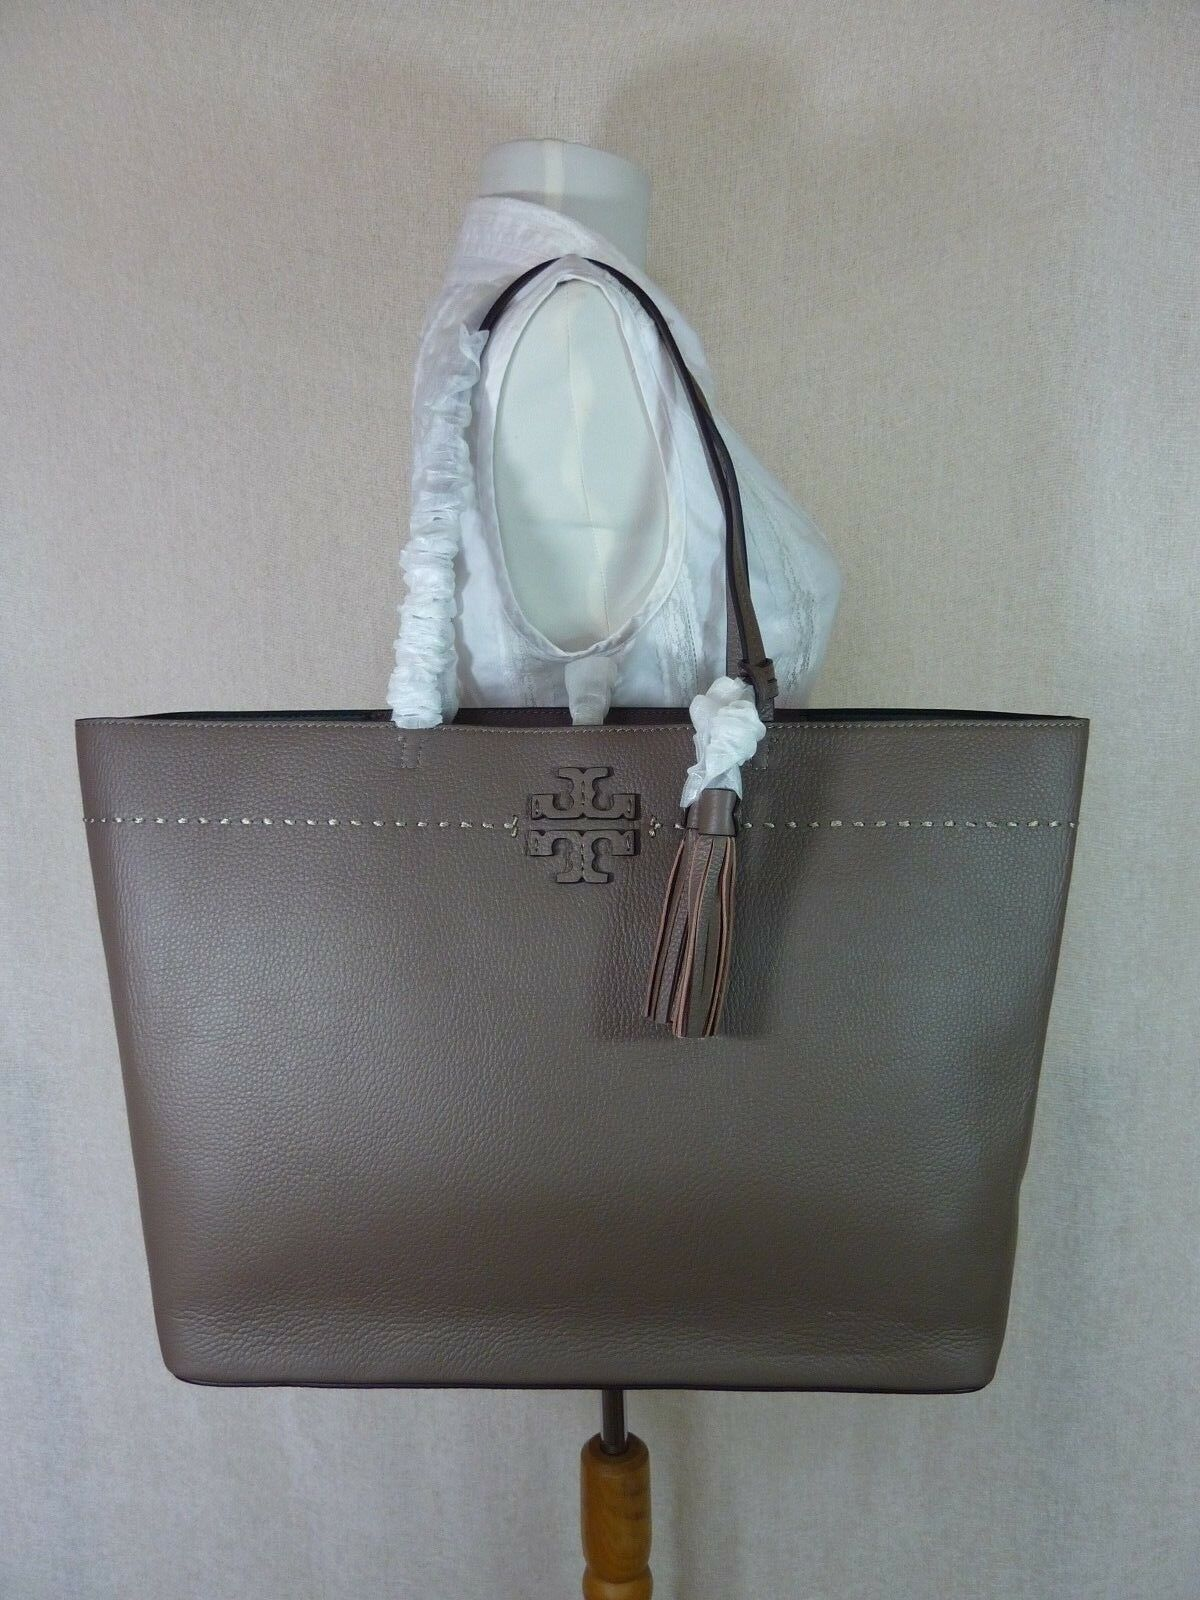 NWT Tory Burch Silver Maple/Malachite Leather McGraw Tote Bag $398